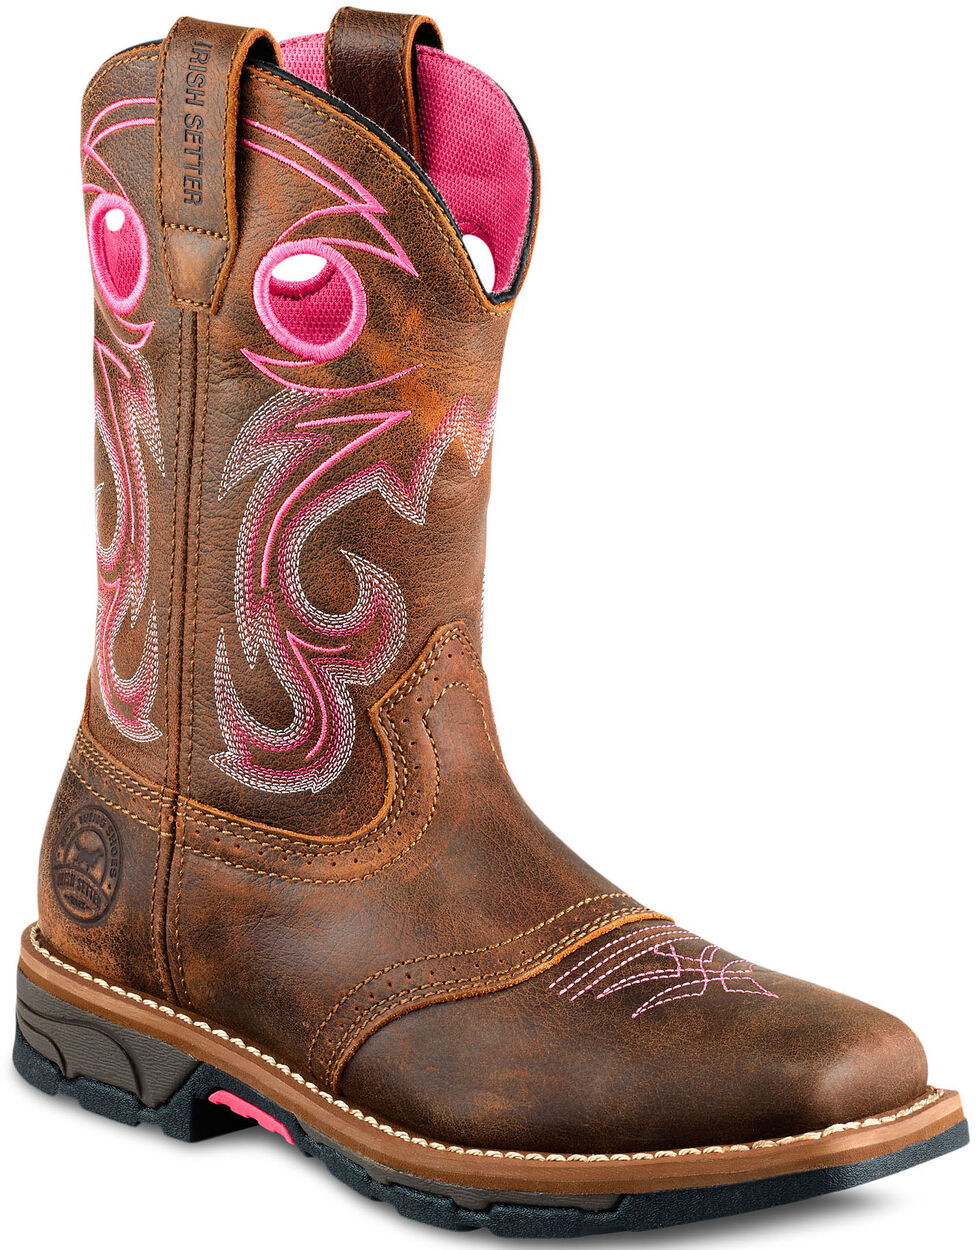 Irish Setter by Red Wing Shoes Women's Marshall Pink Work Boots - Steel Toe , Brown, hi-res